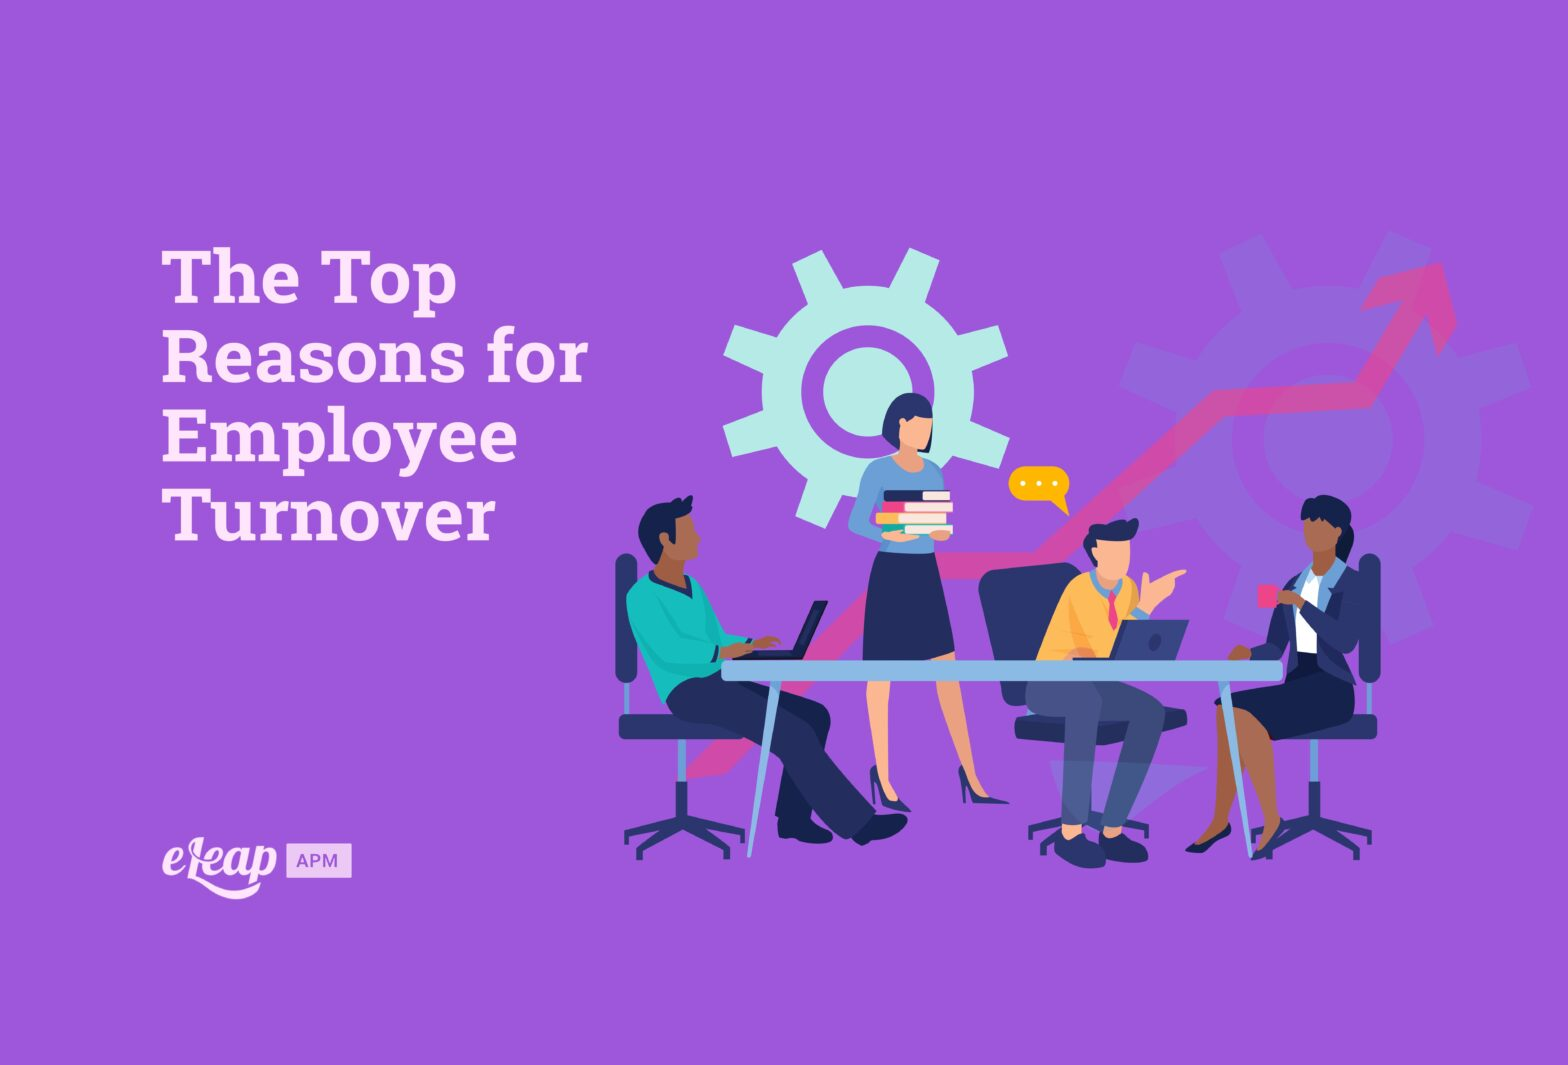 The Top Reasons for Employee Turnover